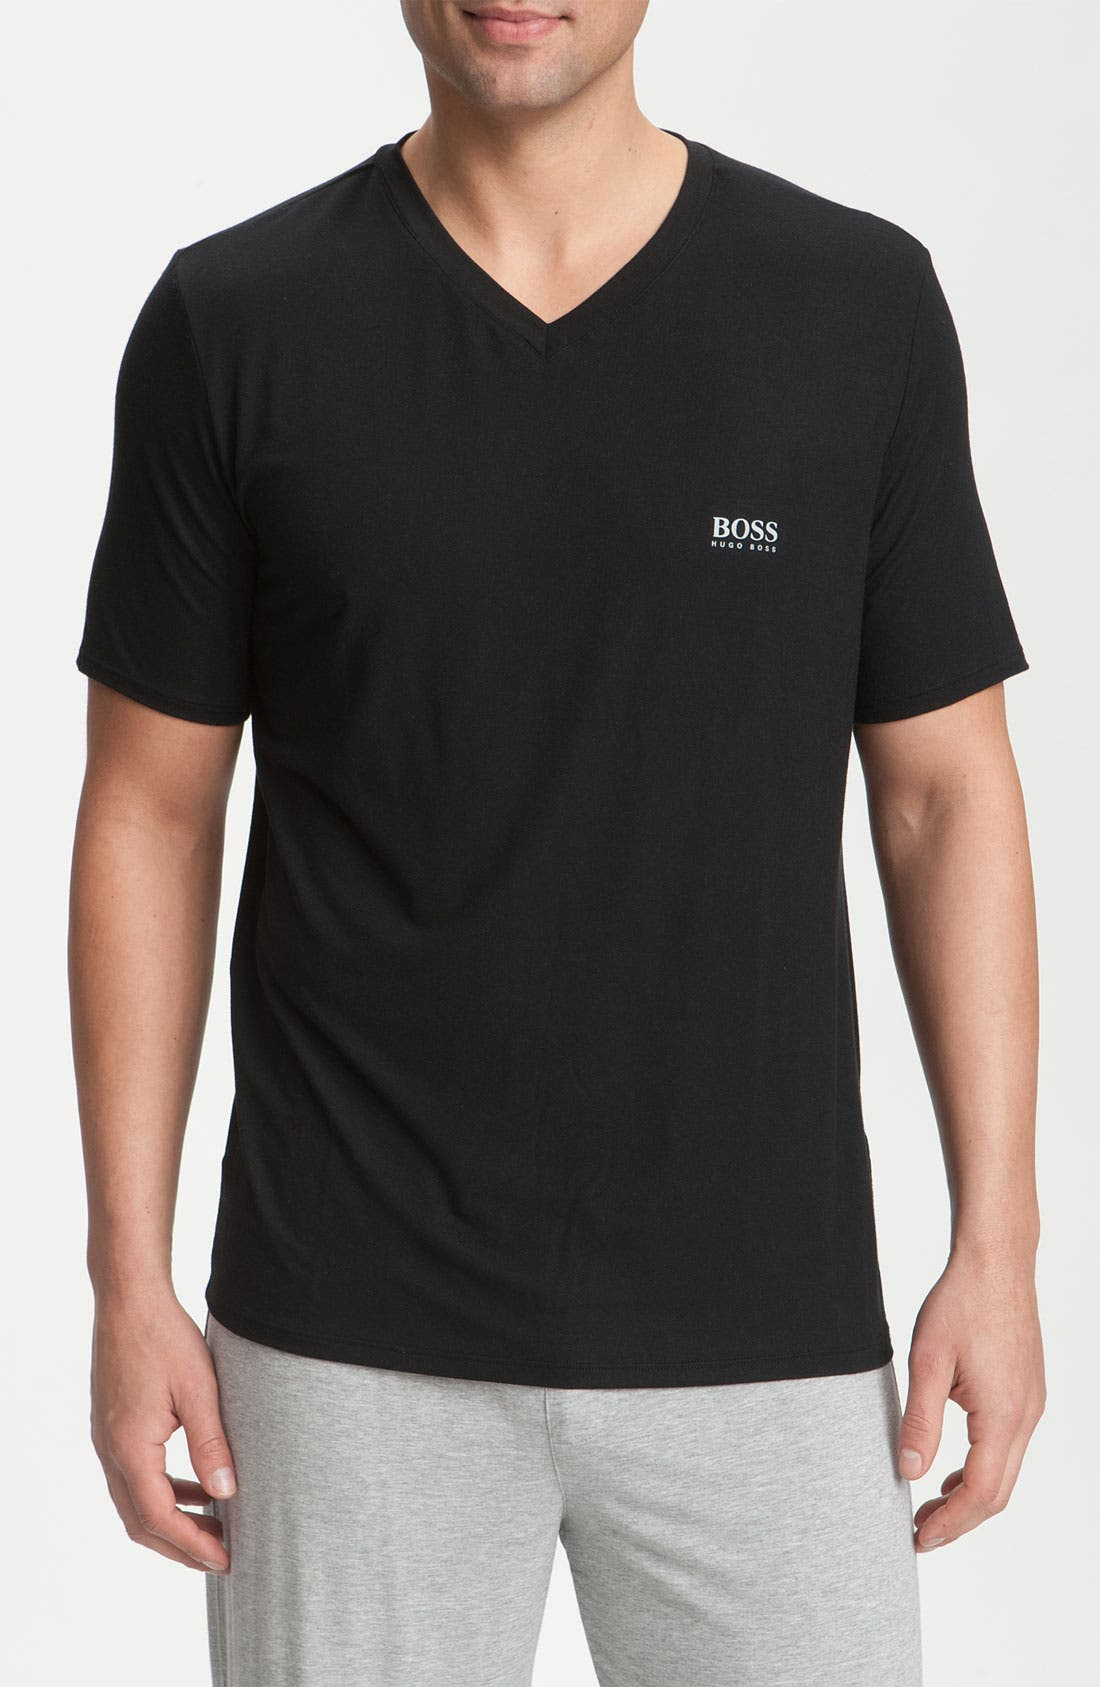 Main Image - BOSS 'Innovation 5' V-Neck T-Shirt